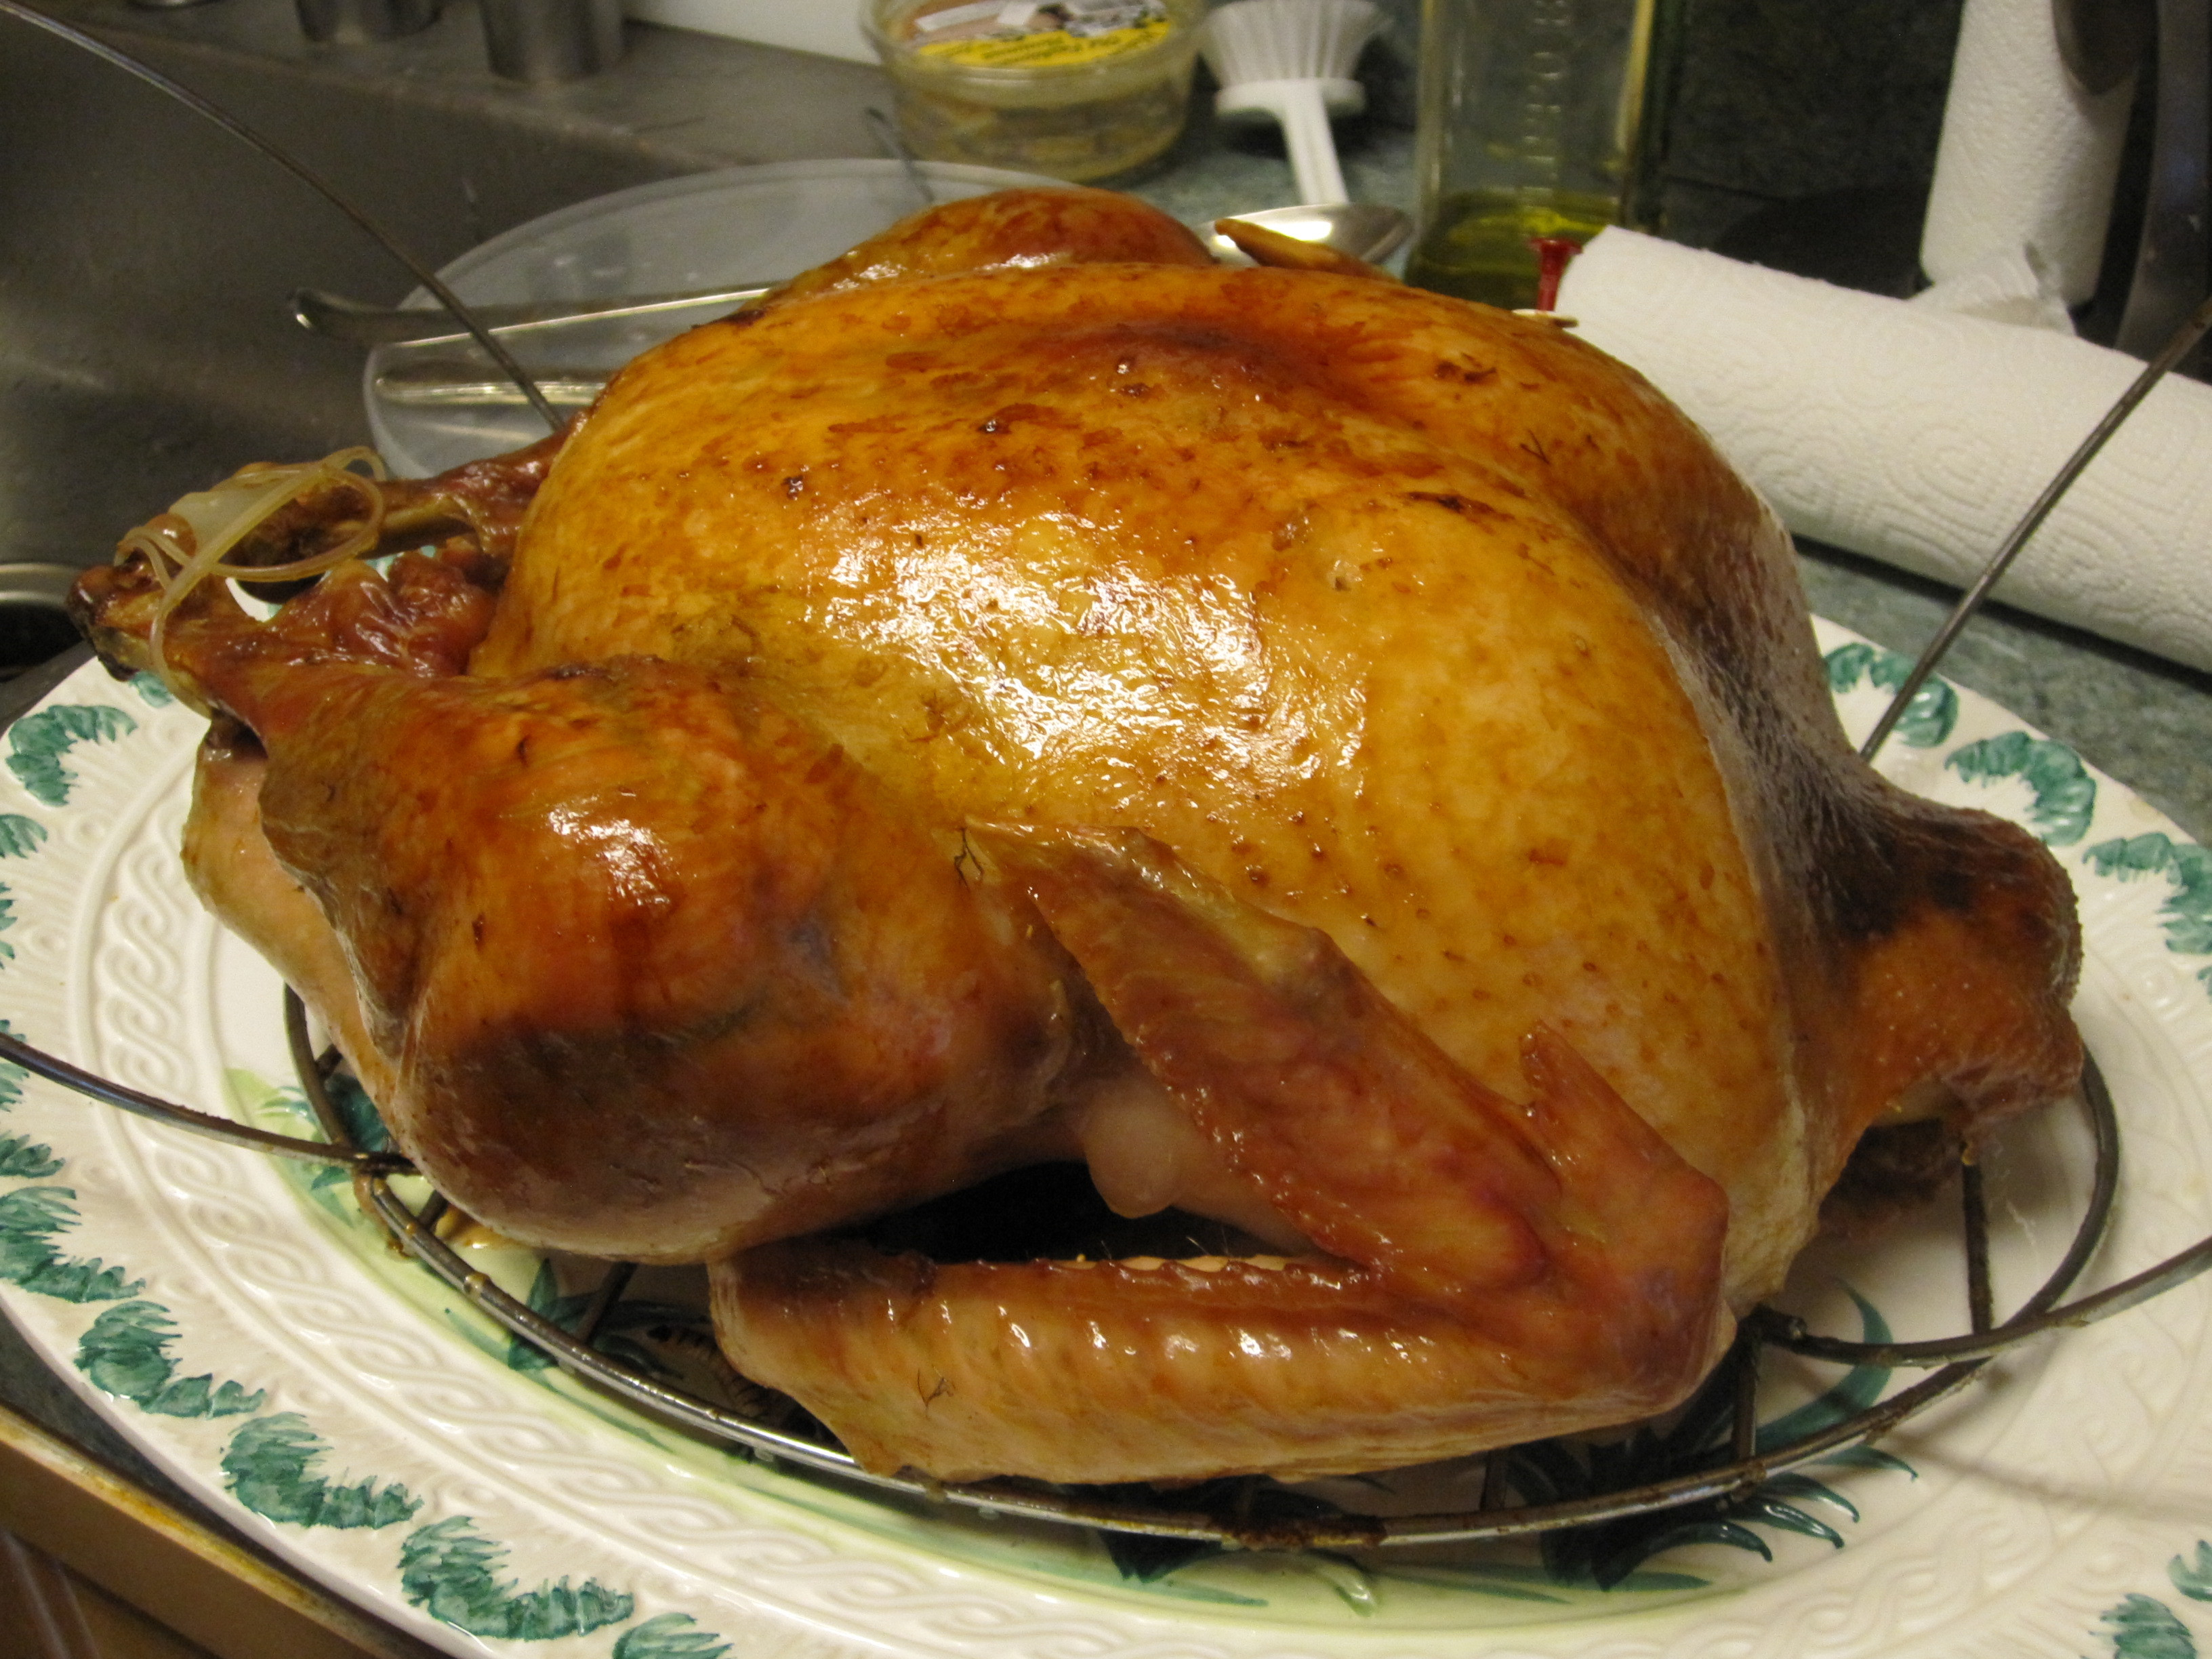 Order Cooked Thanksgiving Turkey  The top 20 Ideas About where to Buy Cooked Turkey for